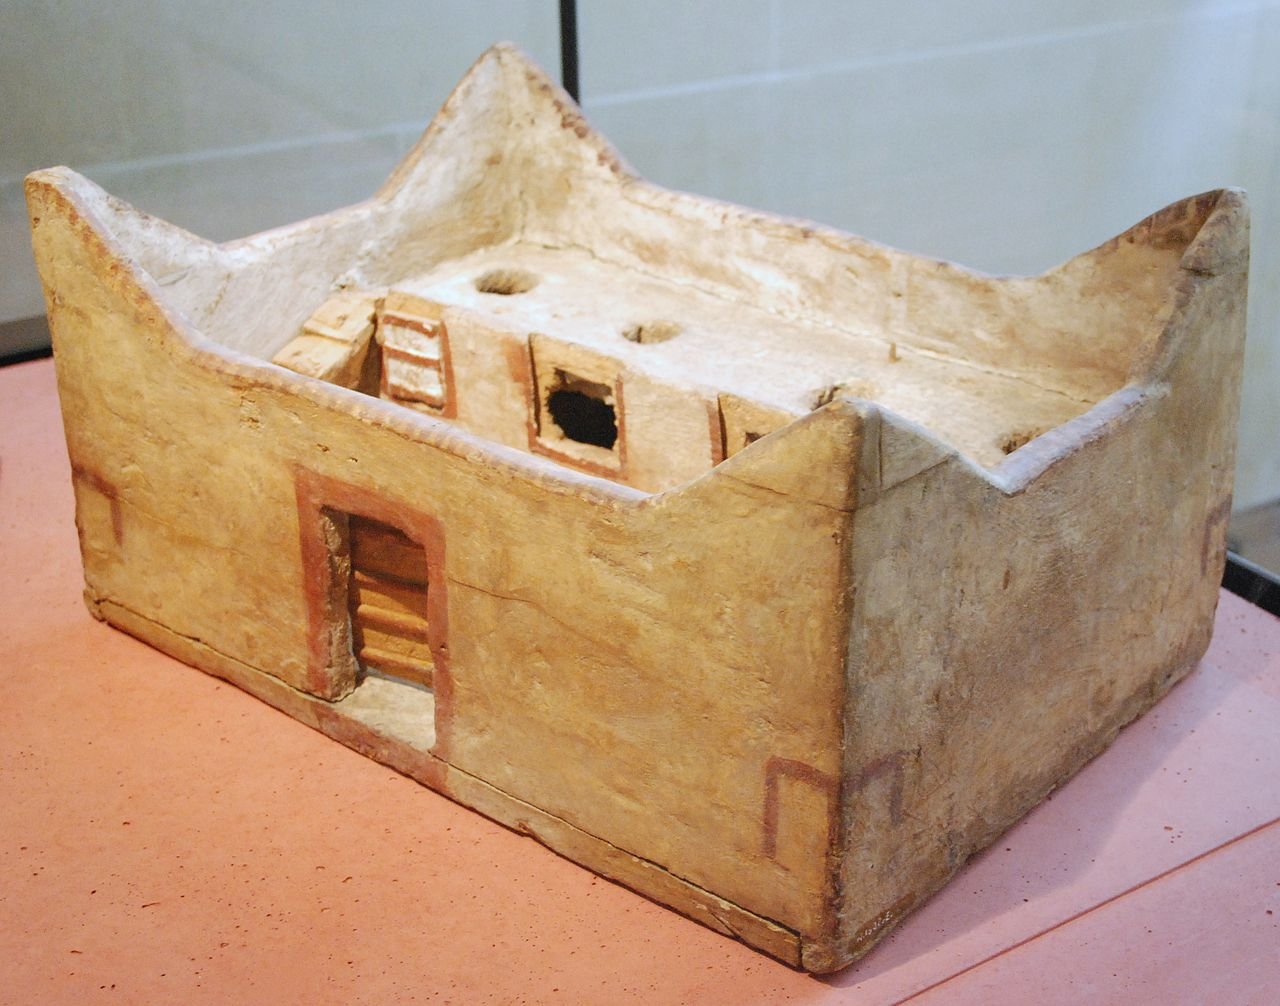 1280px-Model_of_granary_Louvre.JPG